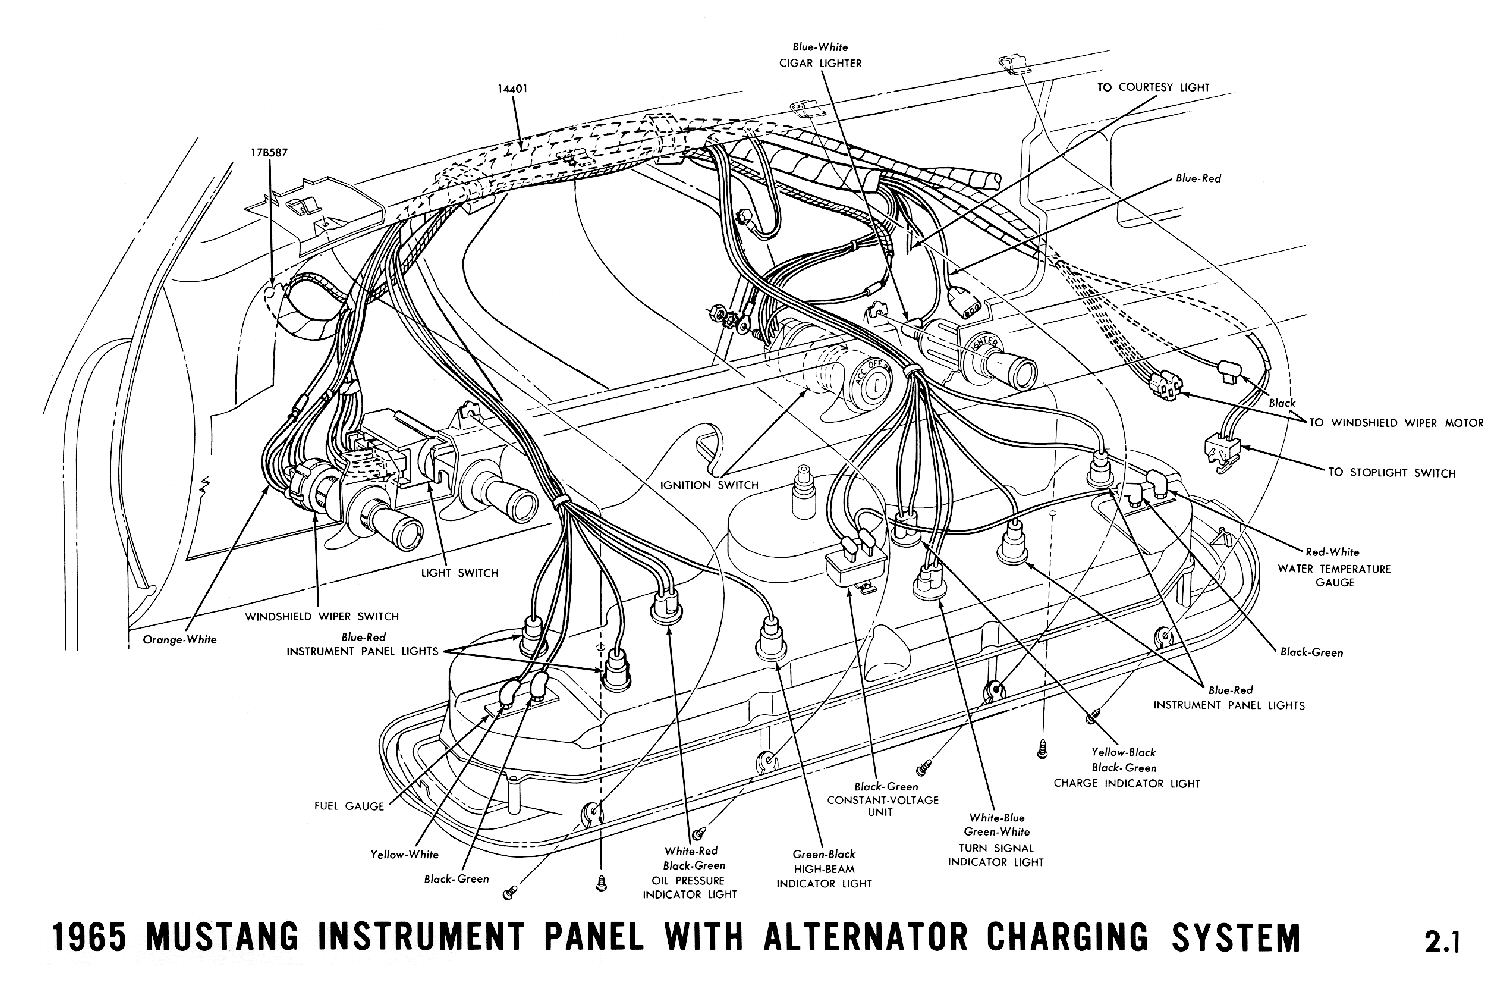 1965 Mustang Wiring Diagrams Average Joe Restoration Usb Front Panel Diagram 1965a